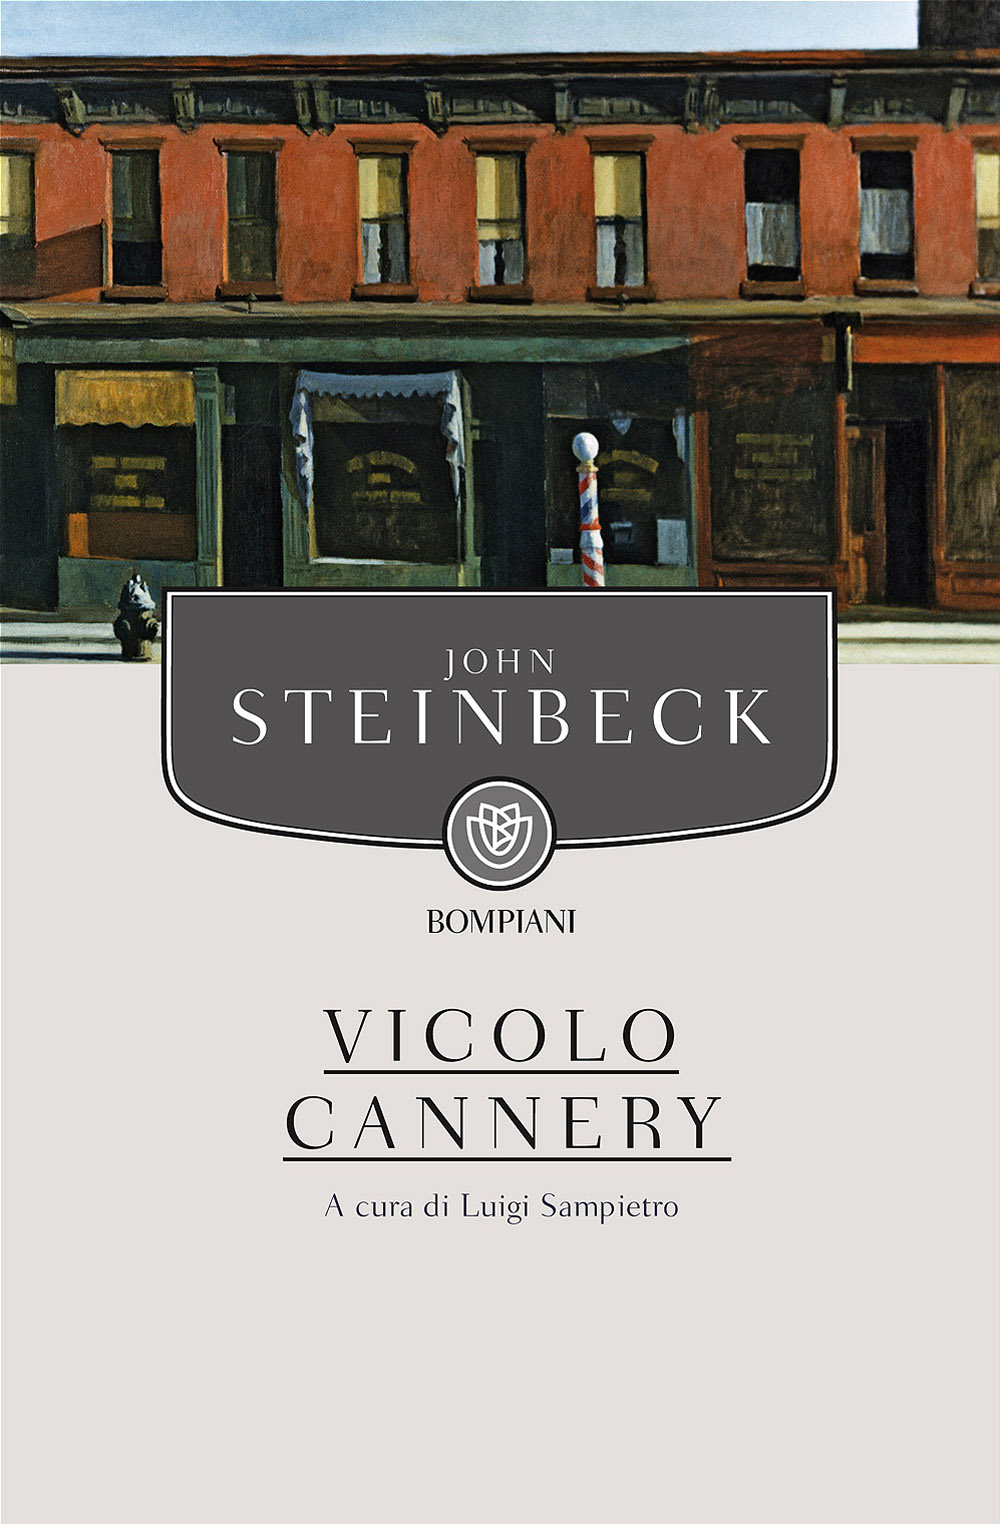 Vicolo Cannery